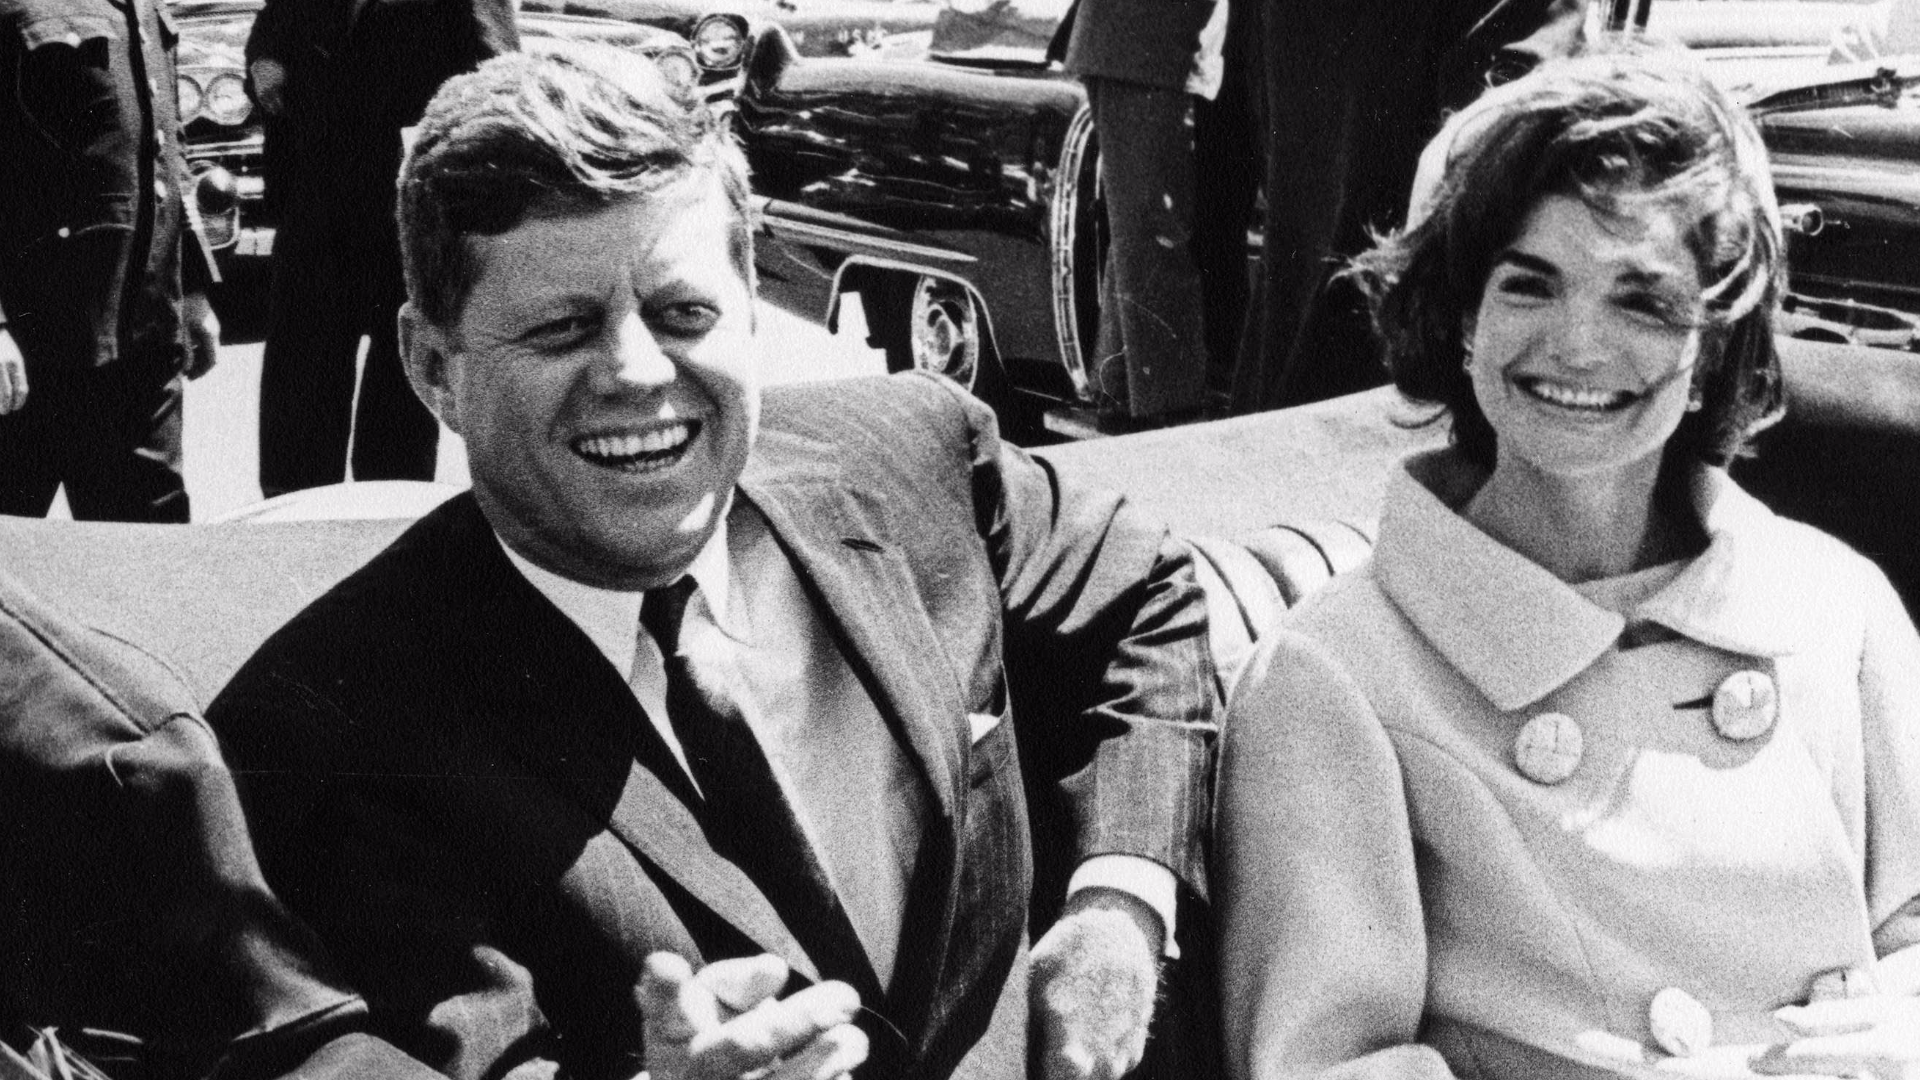 Trump delays release of some JFK assassination documents, bowing to national security concerns